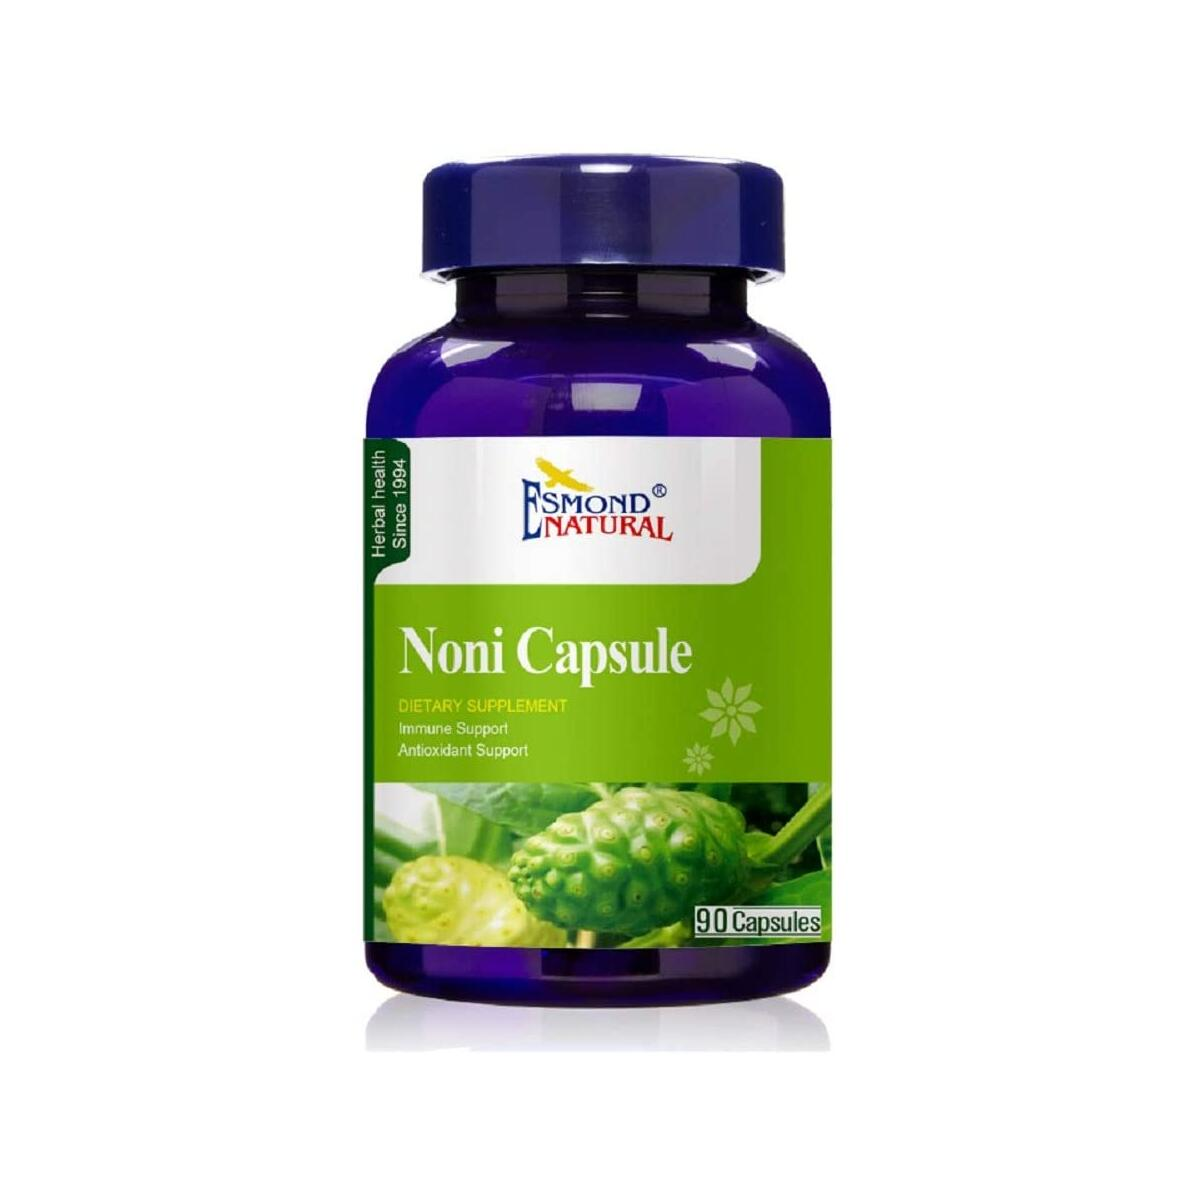 (3 Count, 10% Off) Esmond Natural: Noni Capsule (Immune Support, Antioxidant Support), GMP, Natural Product Assn Certified, Made in USA-270 Capsules